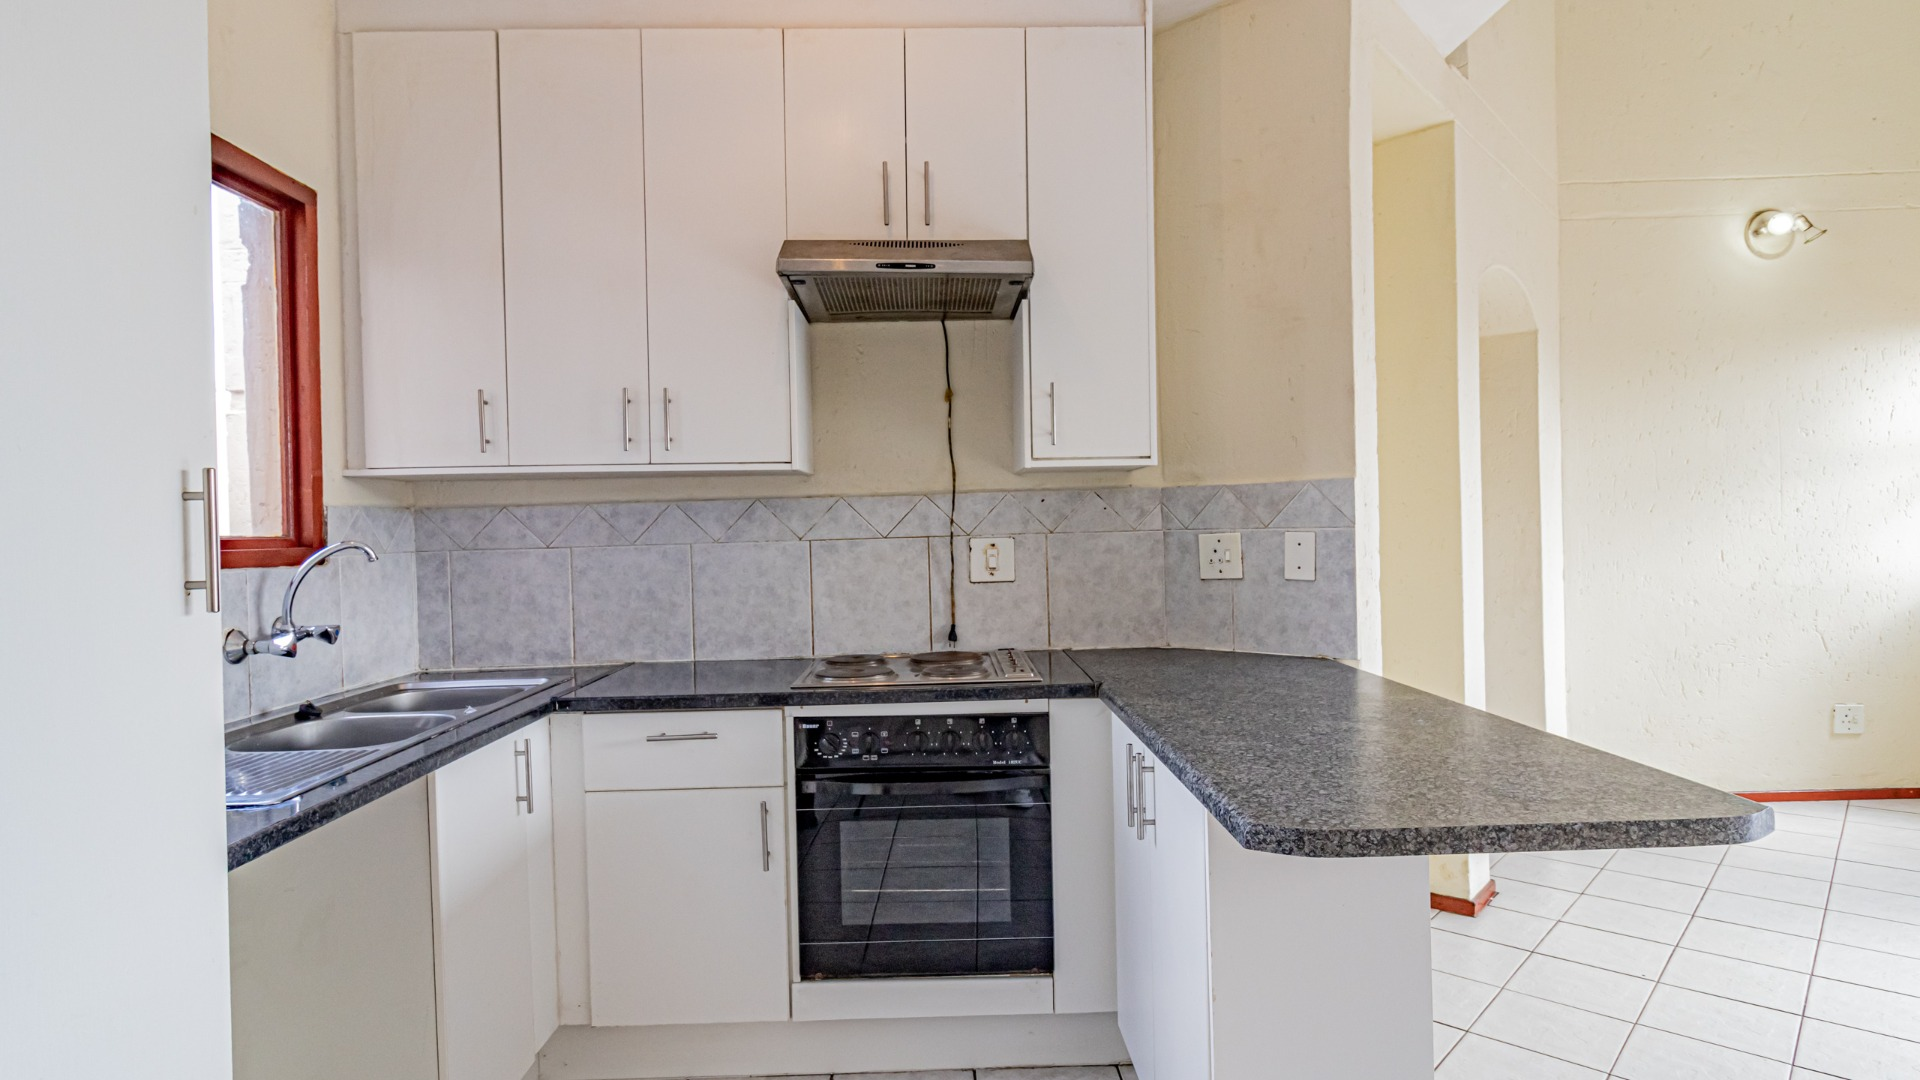 3 Bedroom Apartment / Flat For Sale in Bromhof